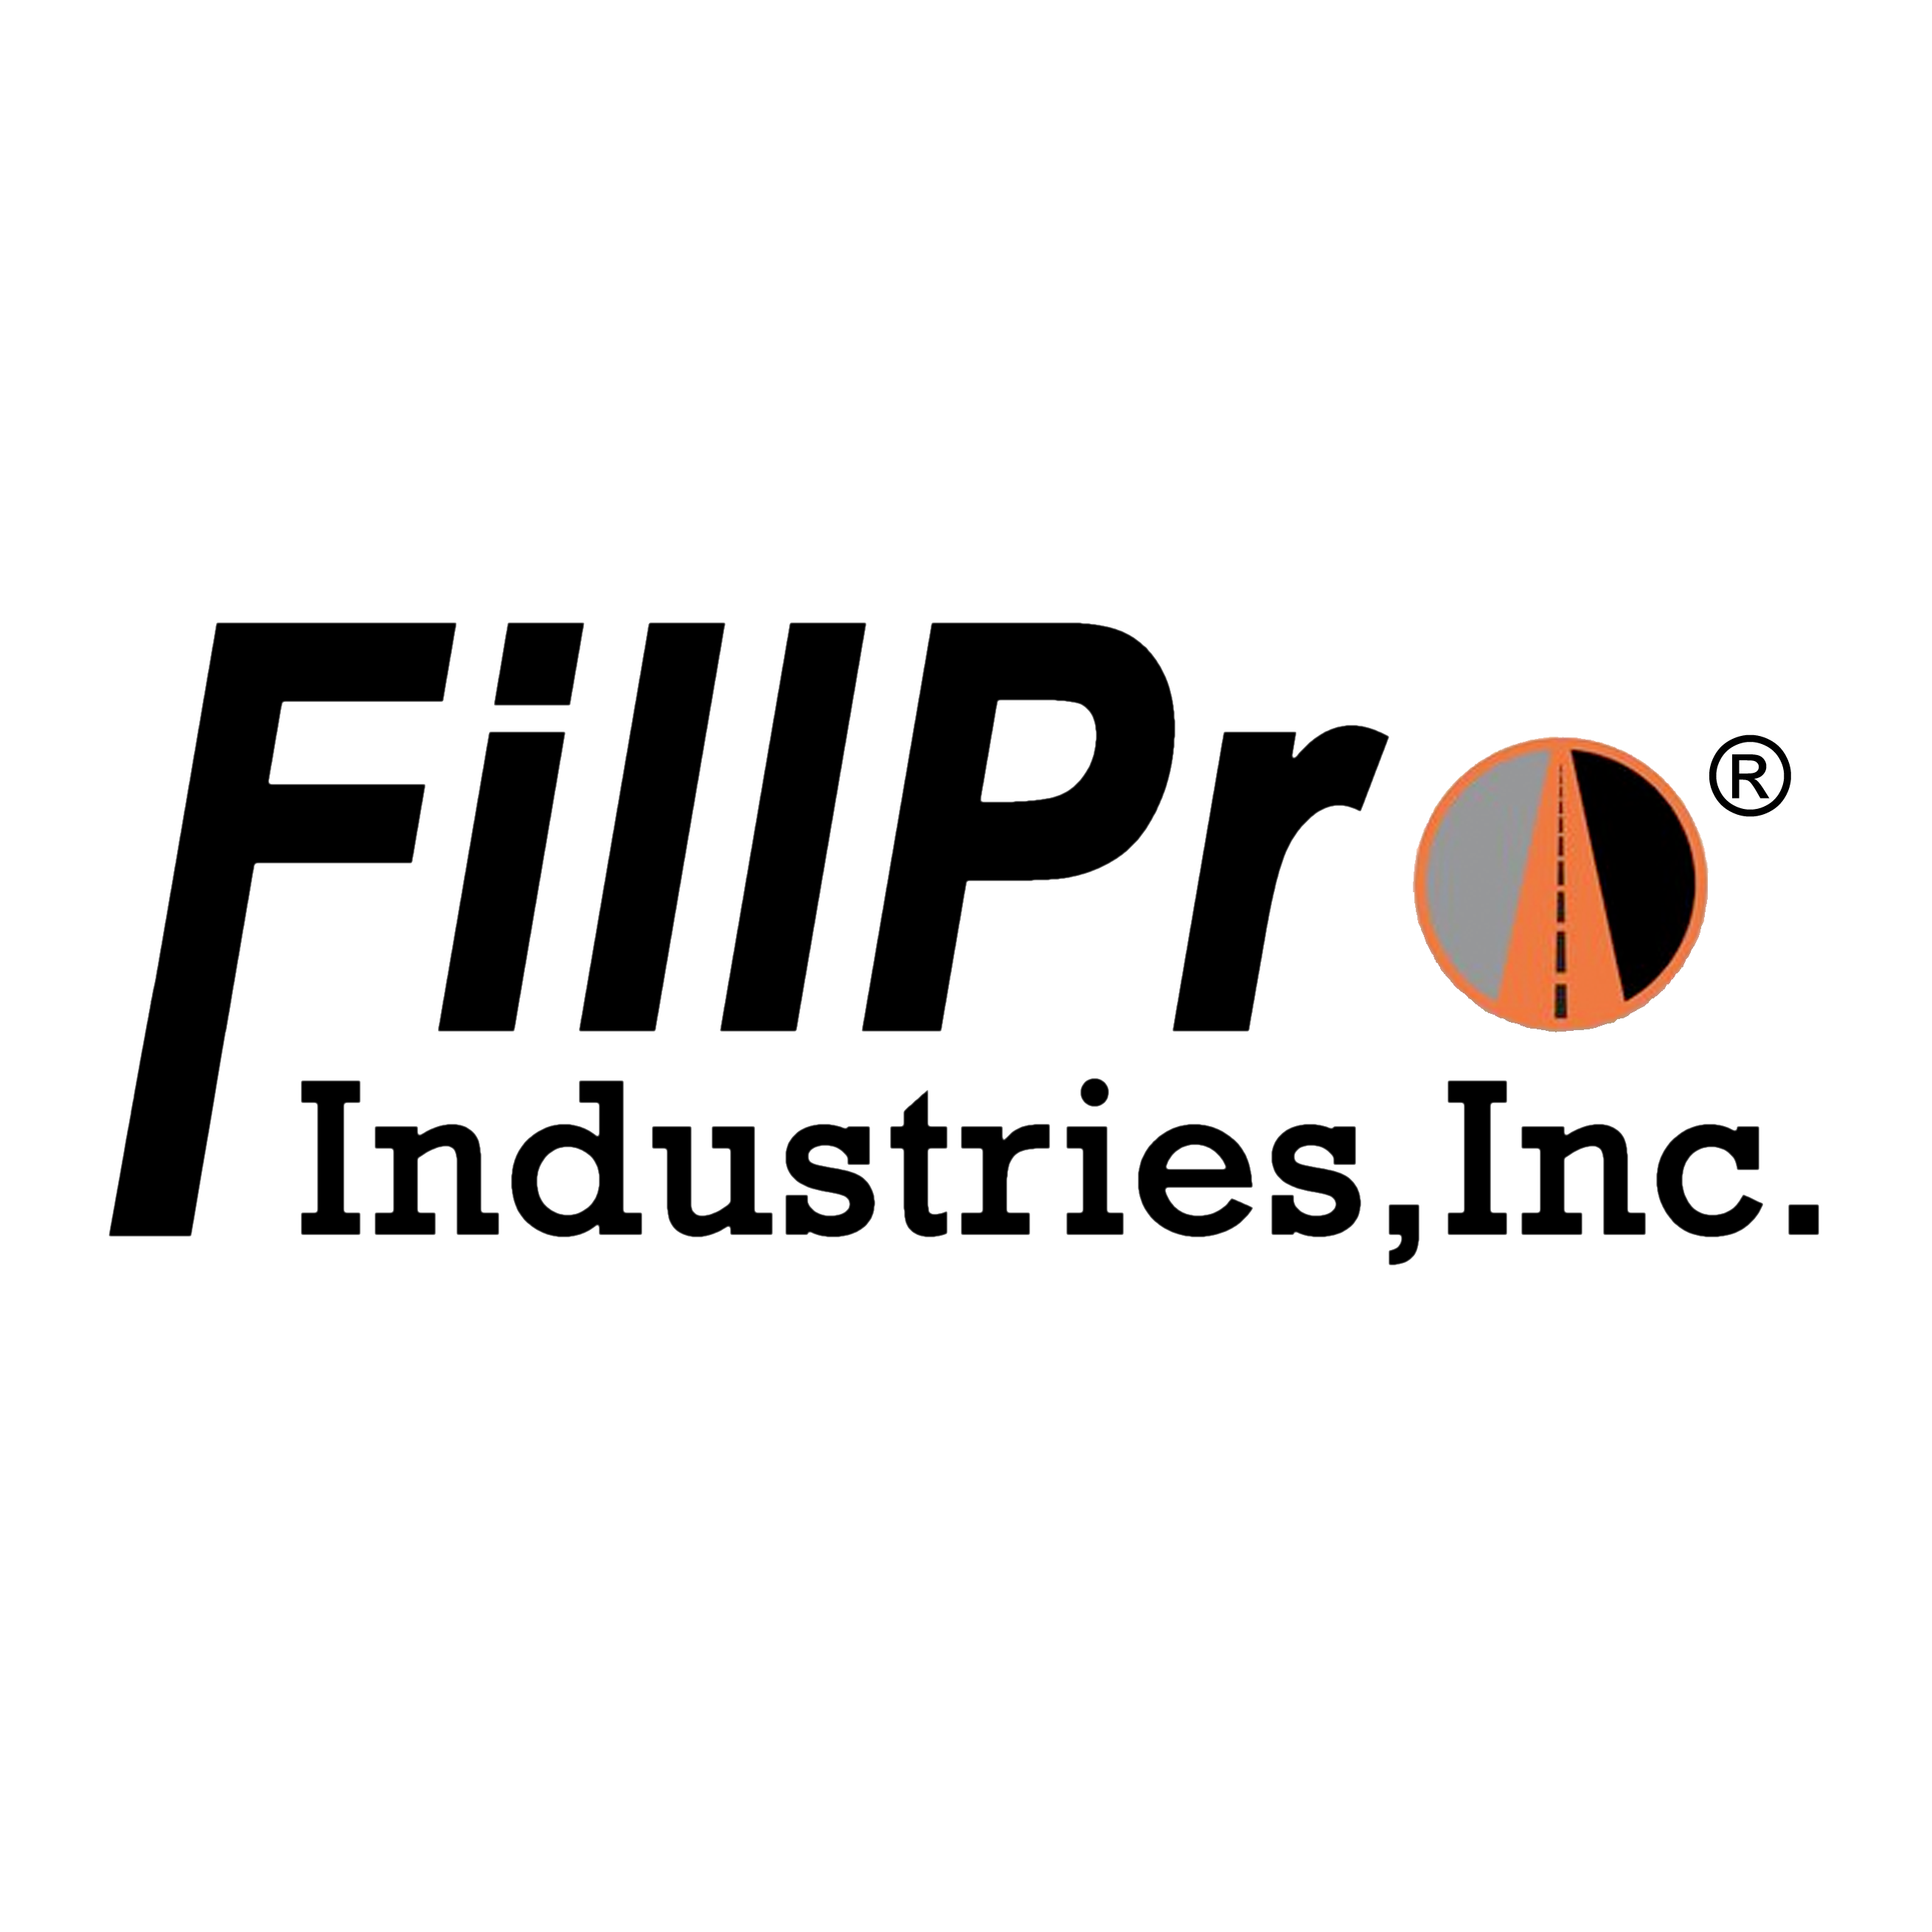 Fillpro Industries, Inc.